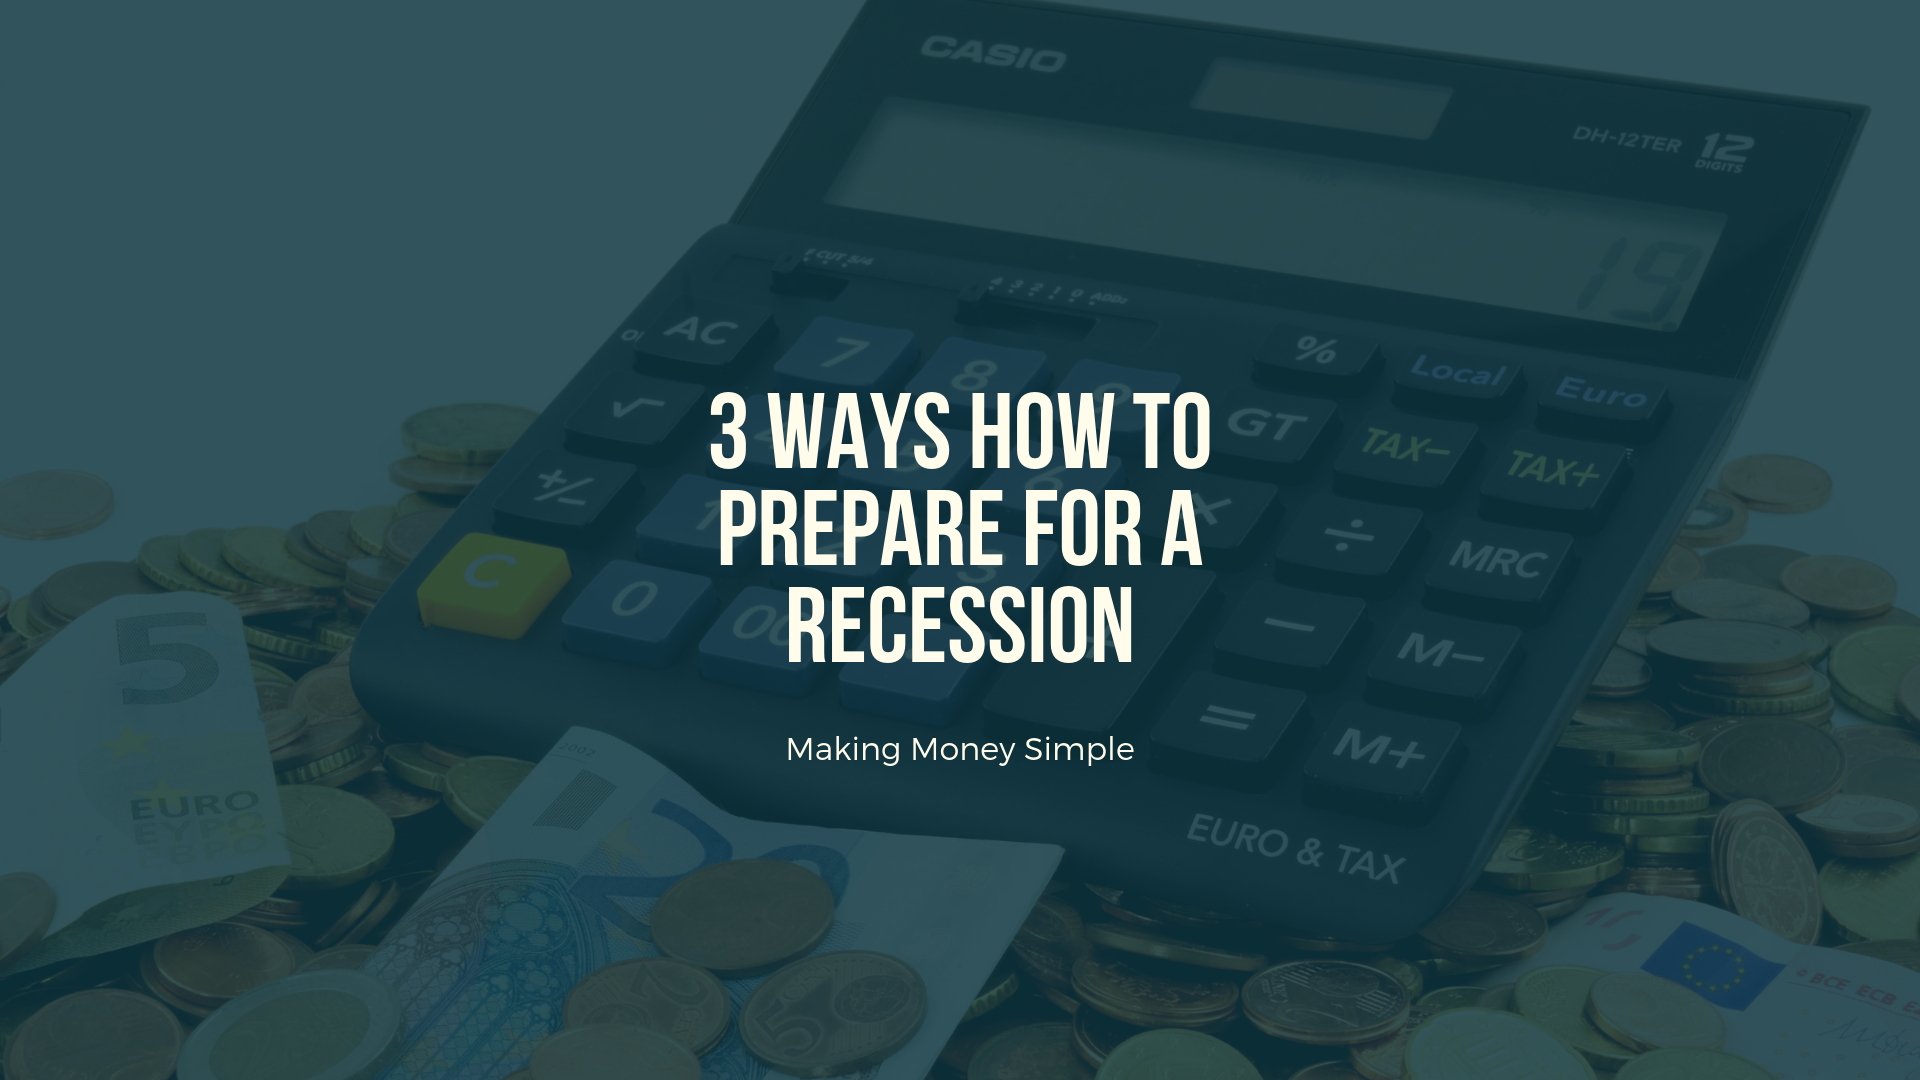 3 Ways How To Prepare For A Recession